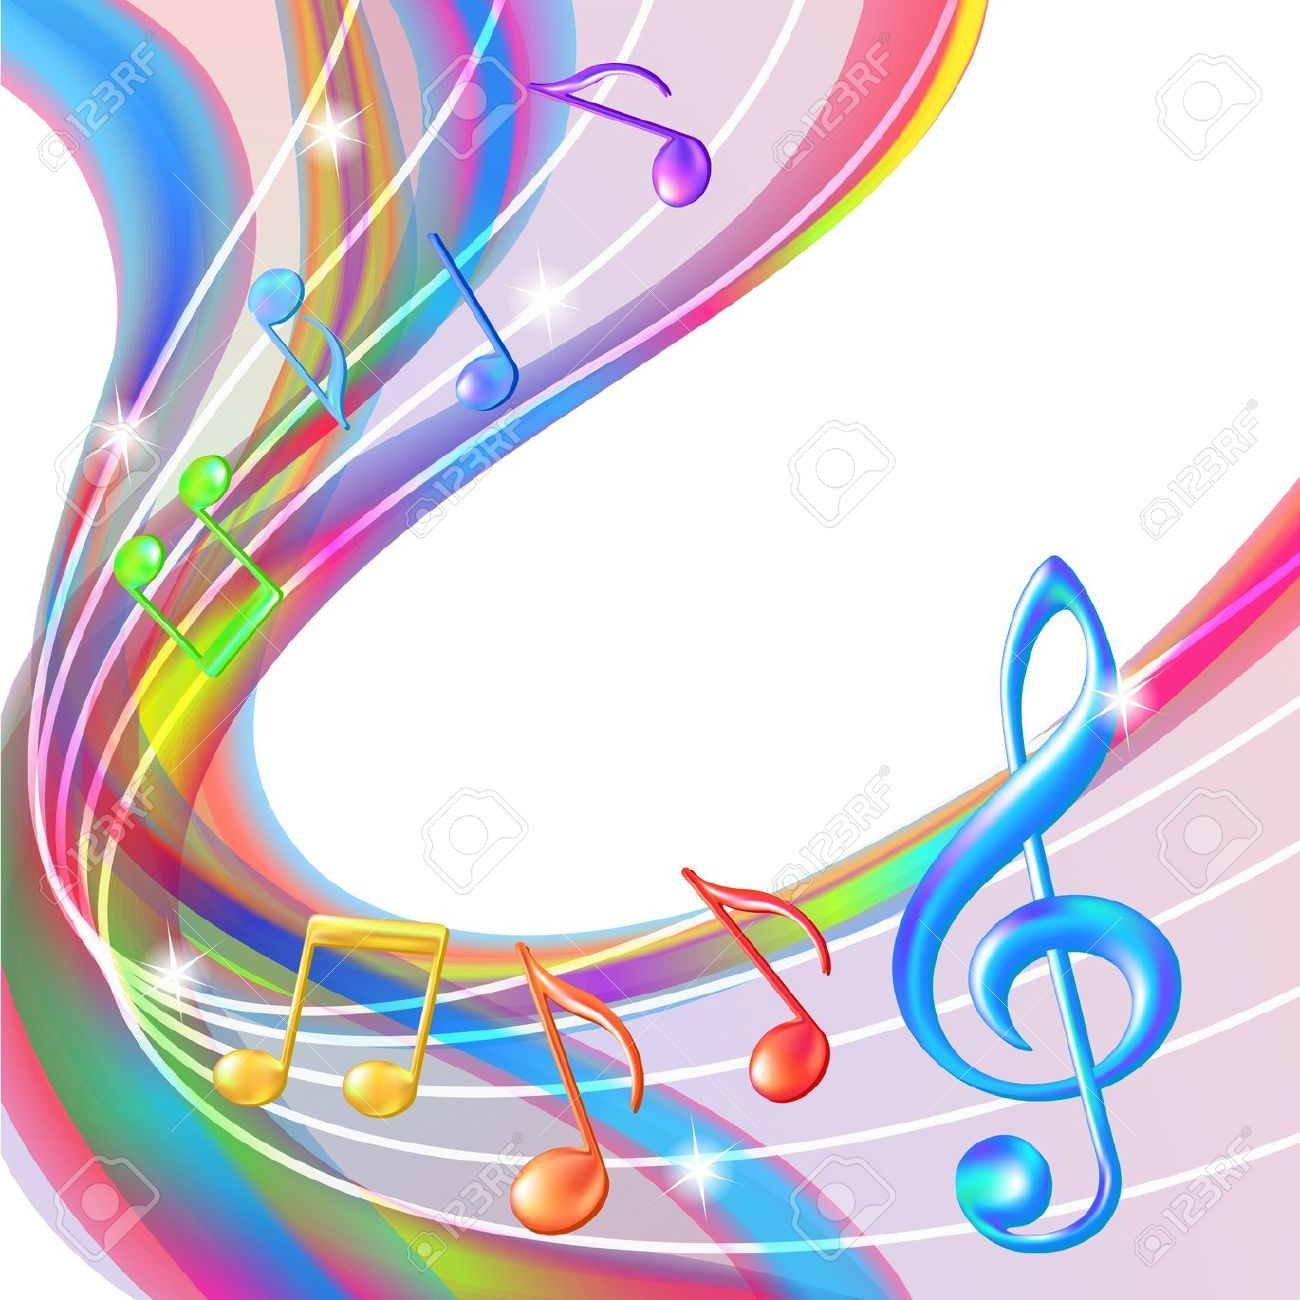 Colorful Abstract Notes Music Background Illustration Music Notes Art Music Wallpaper Music Backgrounds